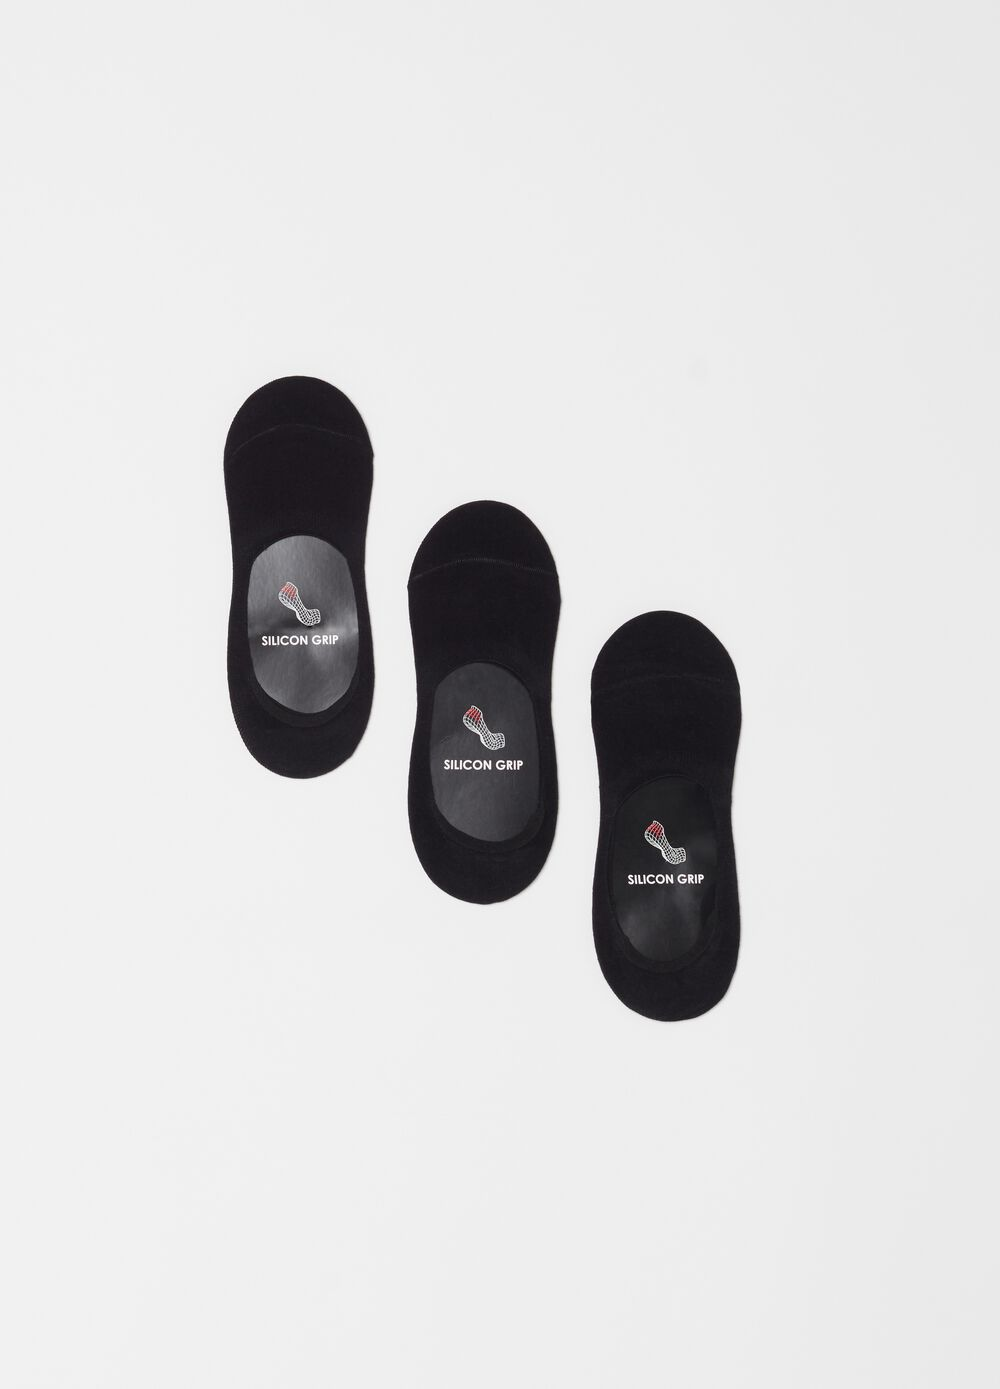 Three-pair pack shoe liners with silicon grip